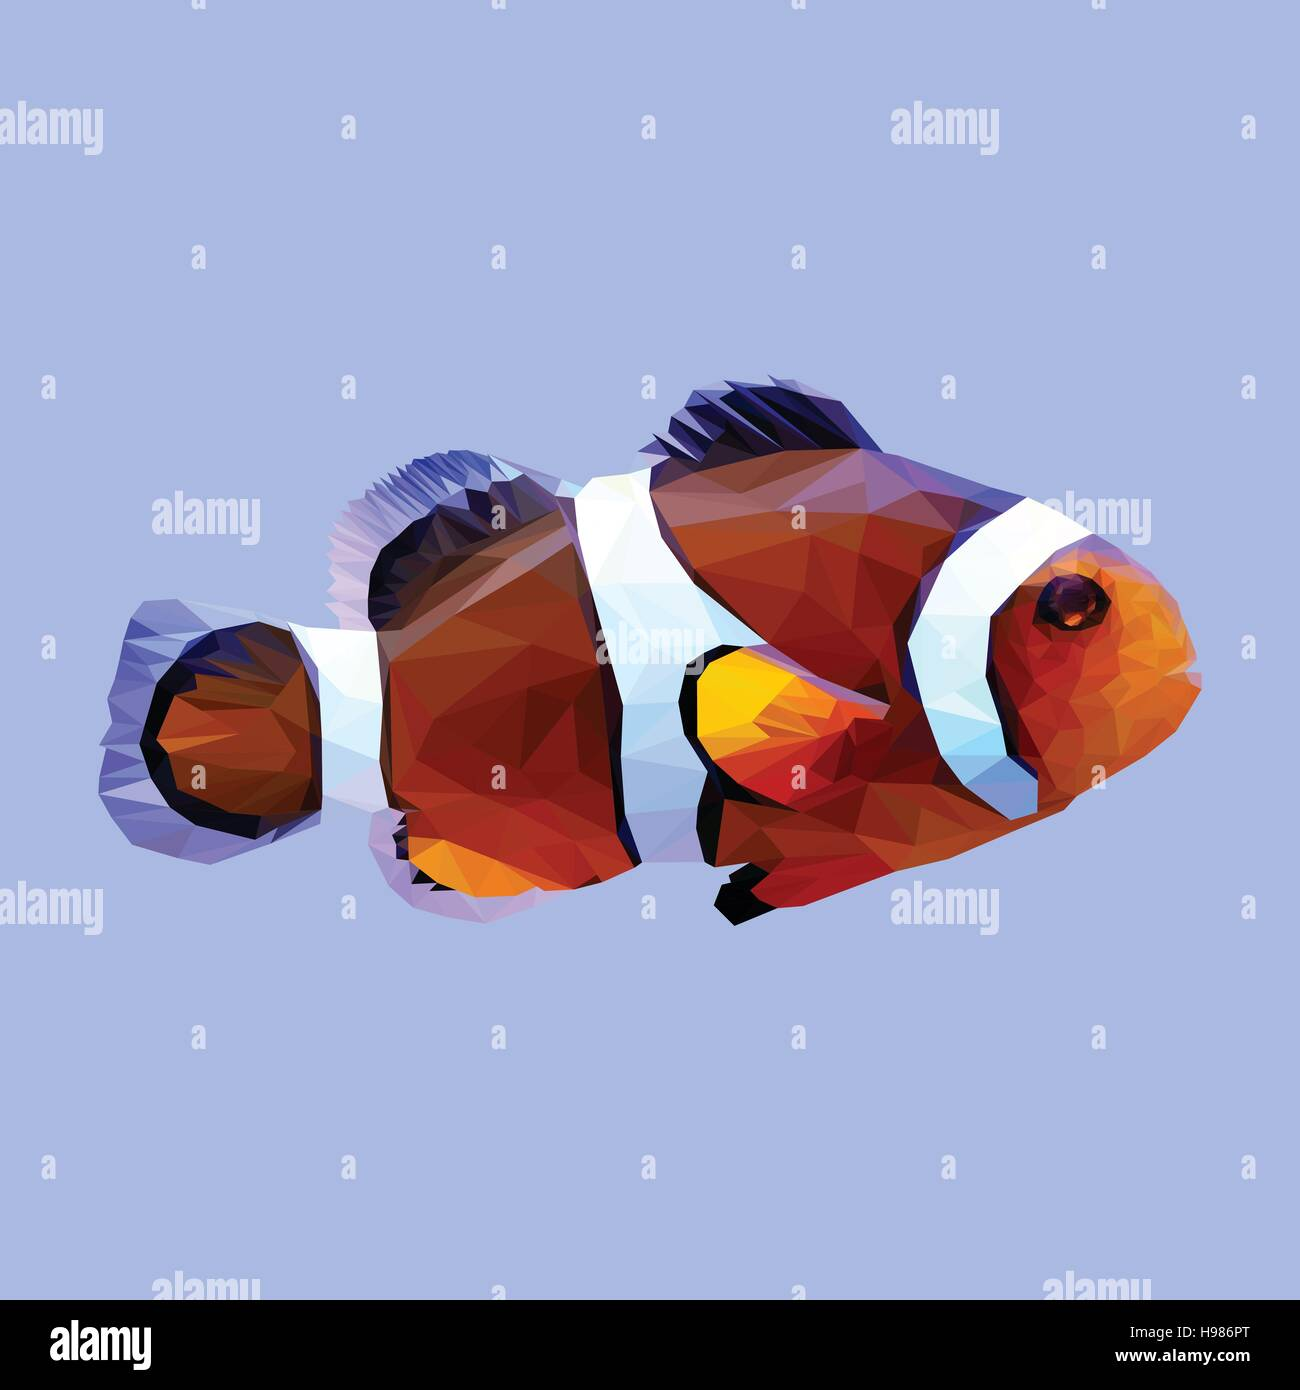 Clownfish Stock Vector Images - Alamy